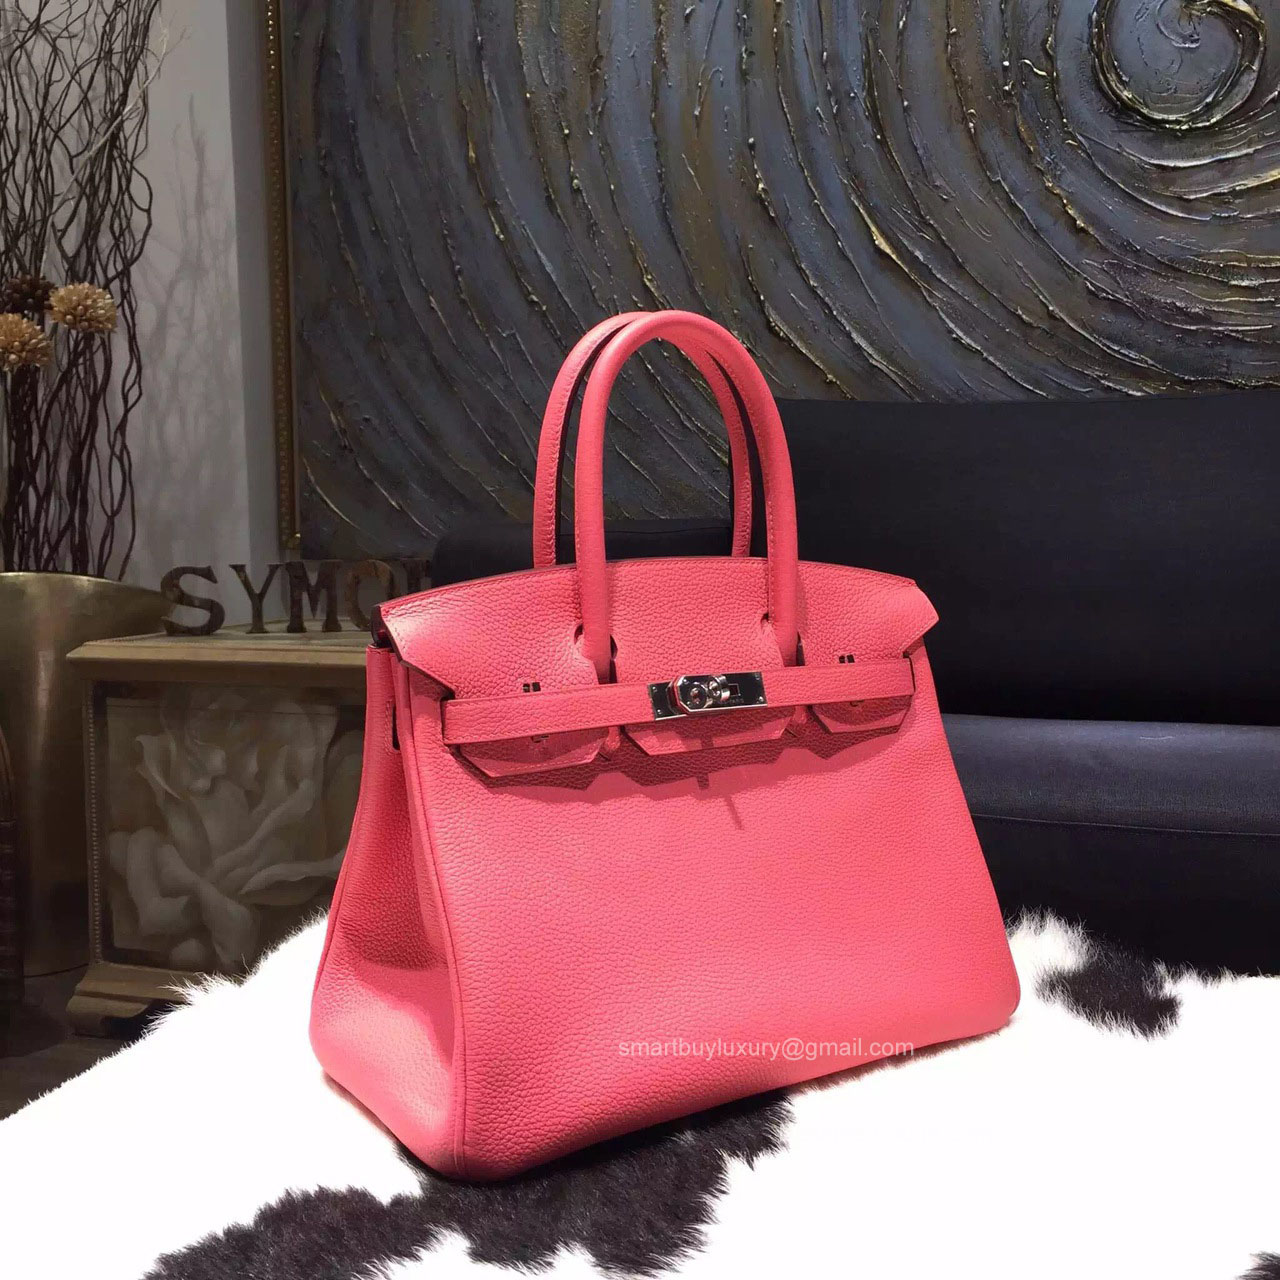 485934d8022b hermes birkin bag 35 rose lipstick togo leather gold hardware ...